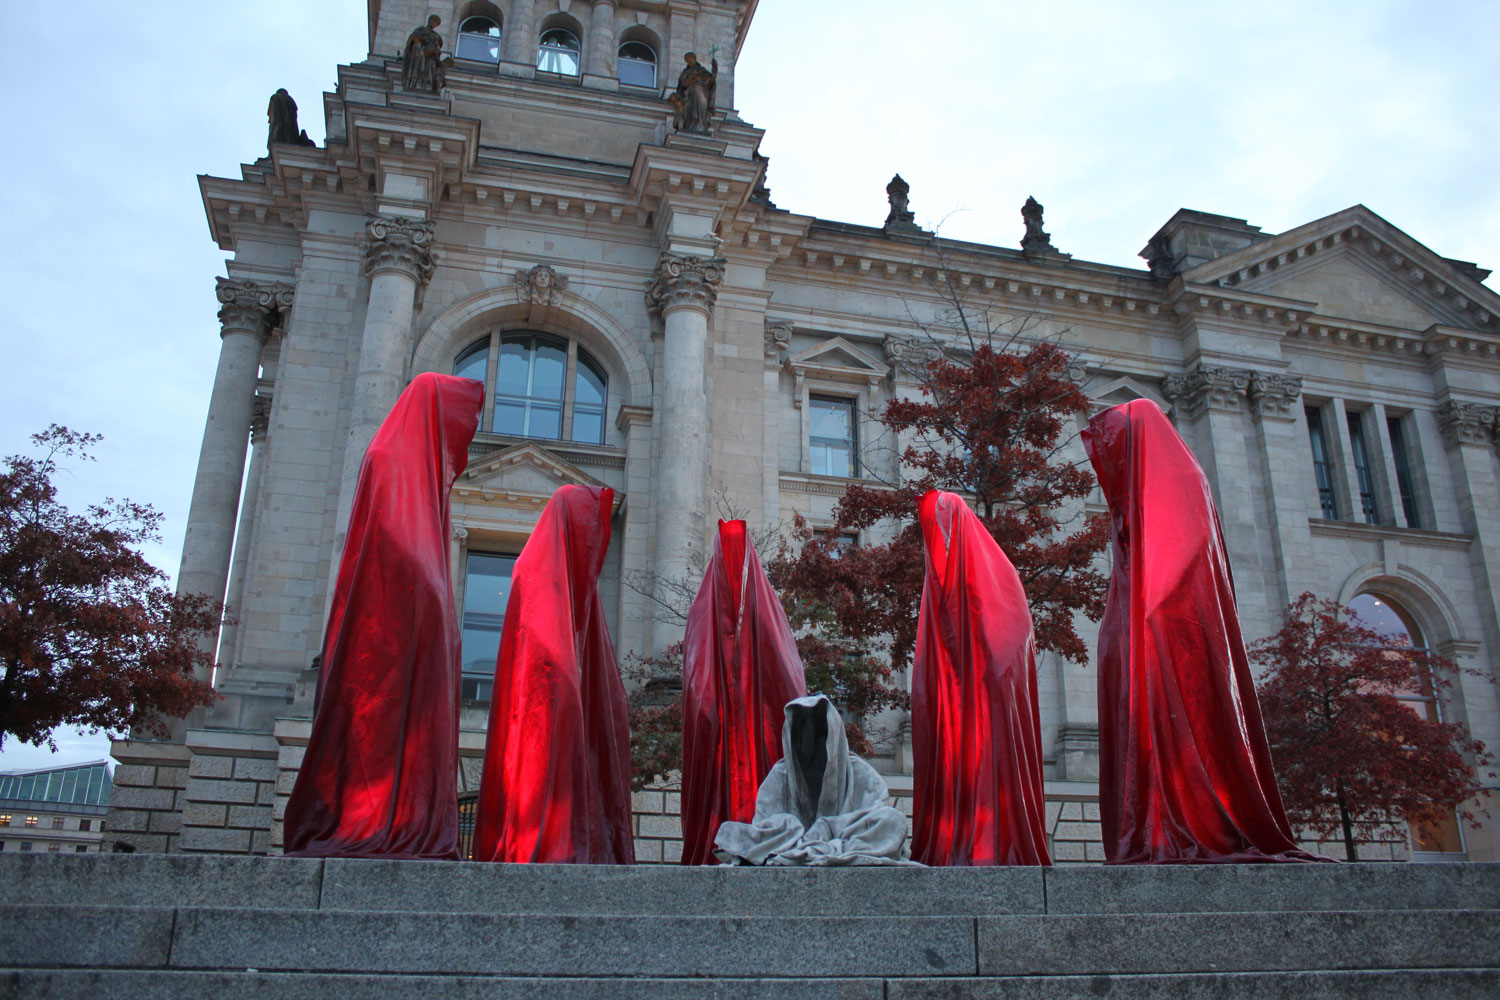 festival-of-lights-berlin-germany-reichstag-contemporary-light-art-sculpture-guardians-of-time-waechter-manfred-kielnhofer-7339